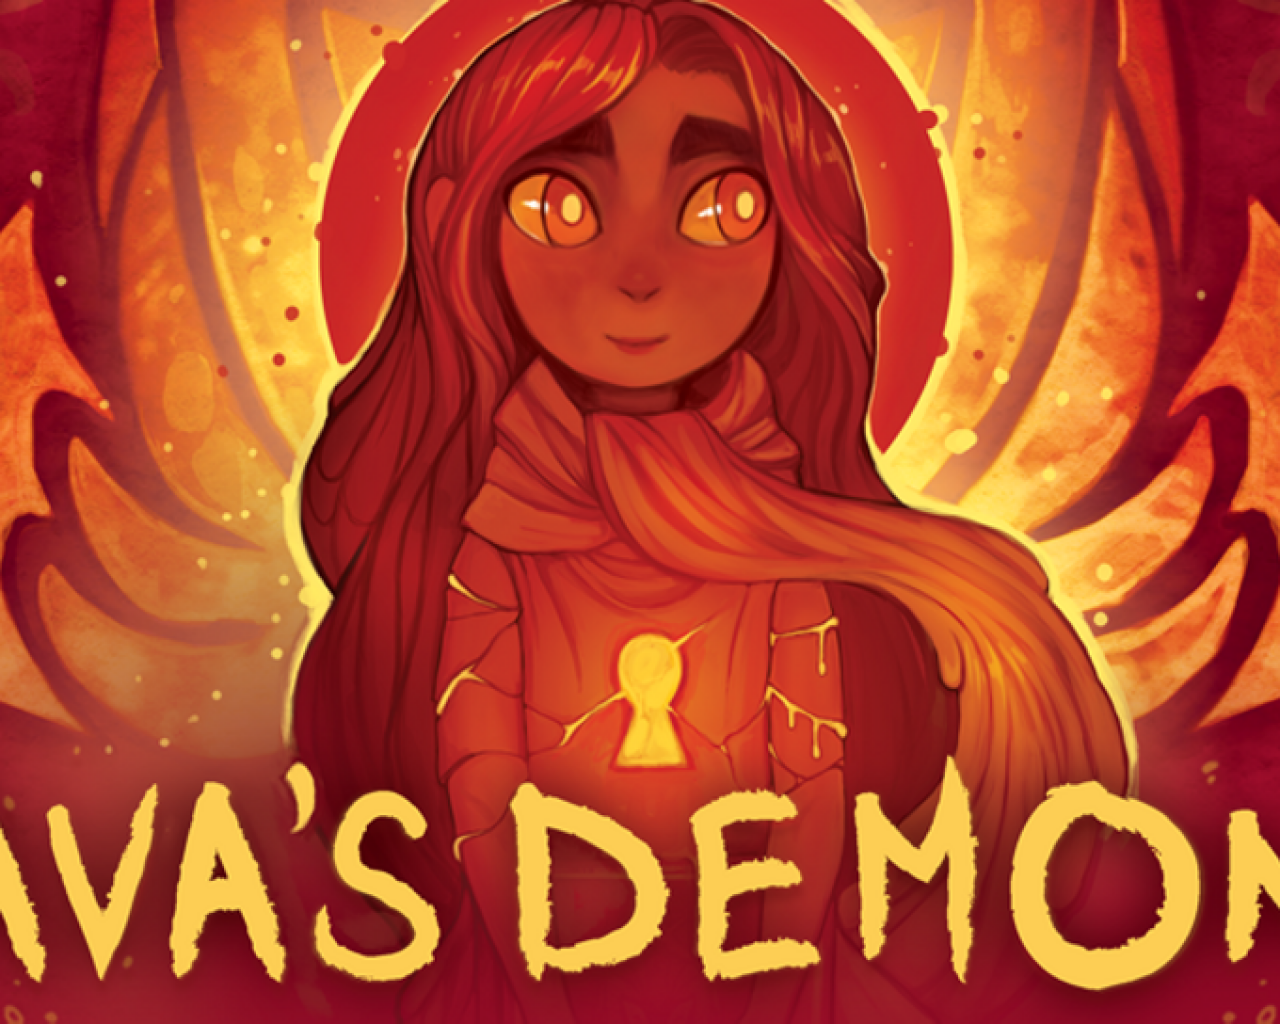 Poster Image for Ava's Demon